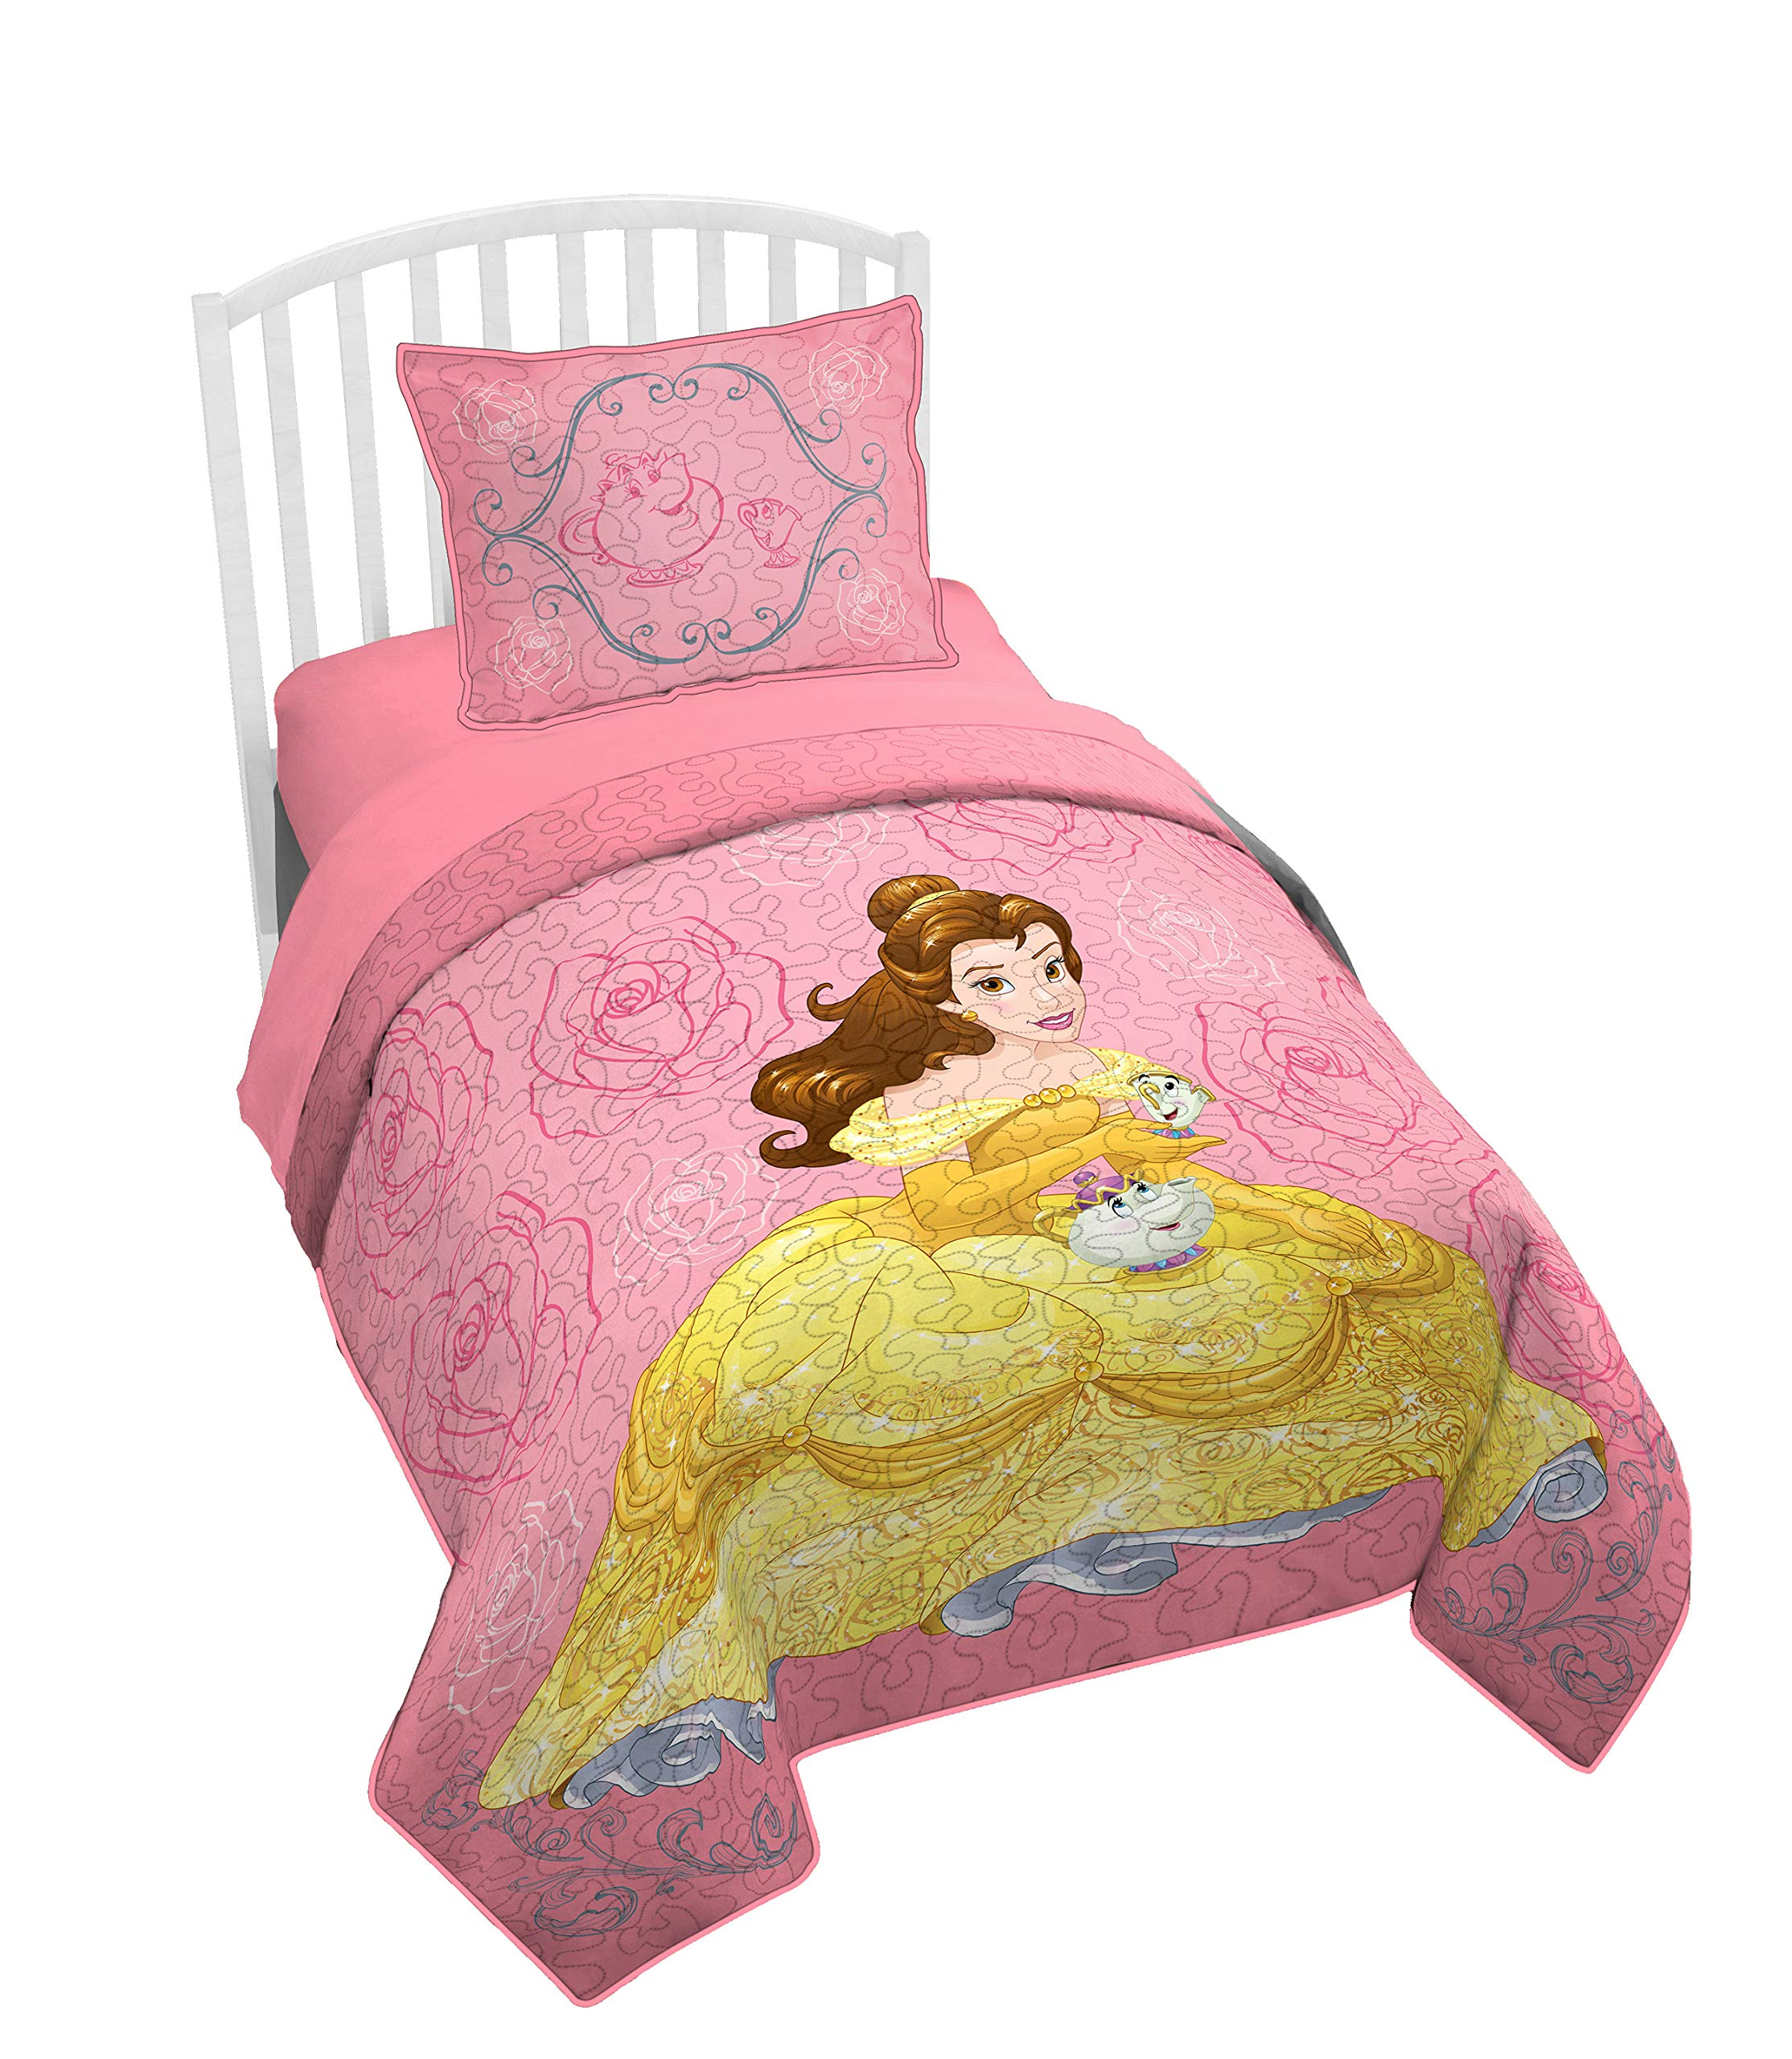 Jay Franco Disney Beauty and The Beast Belle Twin/Full Quilt & Sham Set - Super Soft Kids Bedding Features Belle - Fade Resistant Polyester (Official Disney Product) by Jay Franco